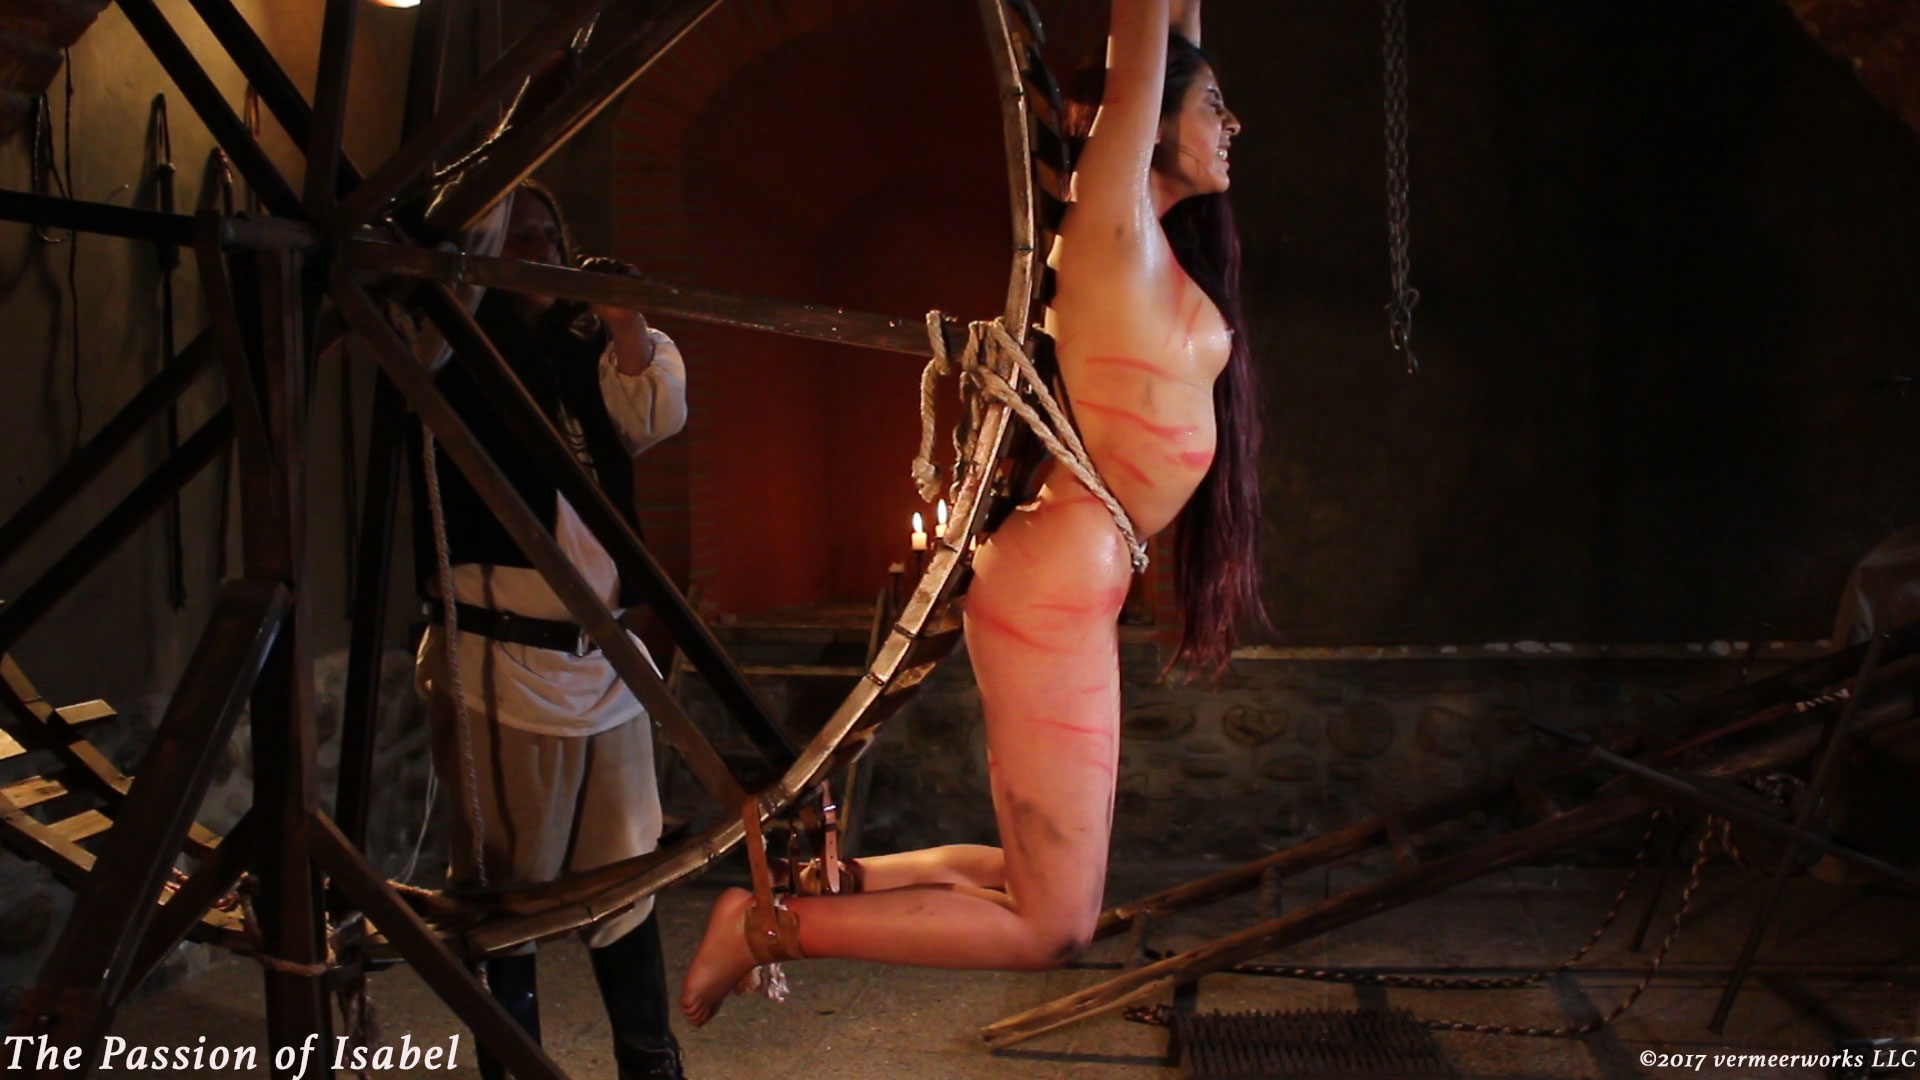 Hump sexy! bdsm female crucifixion